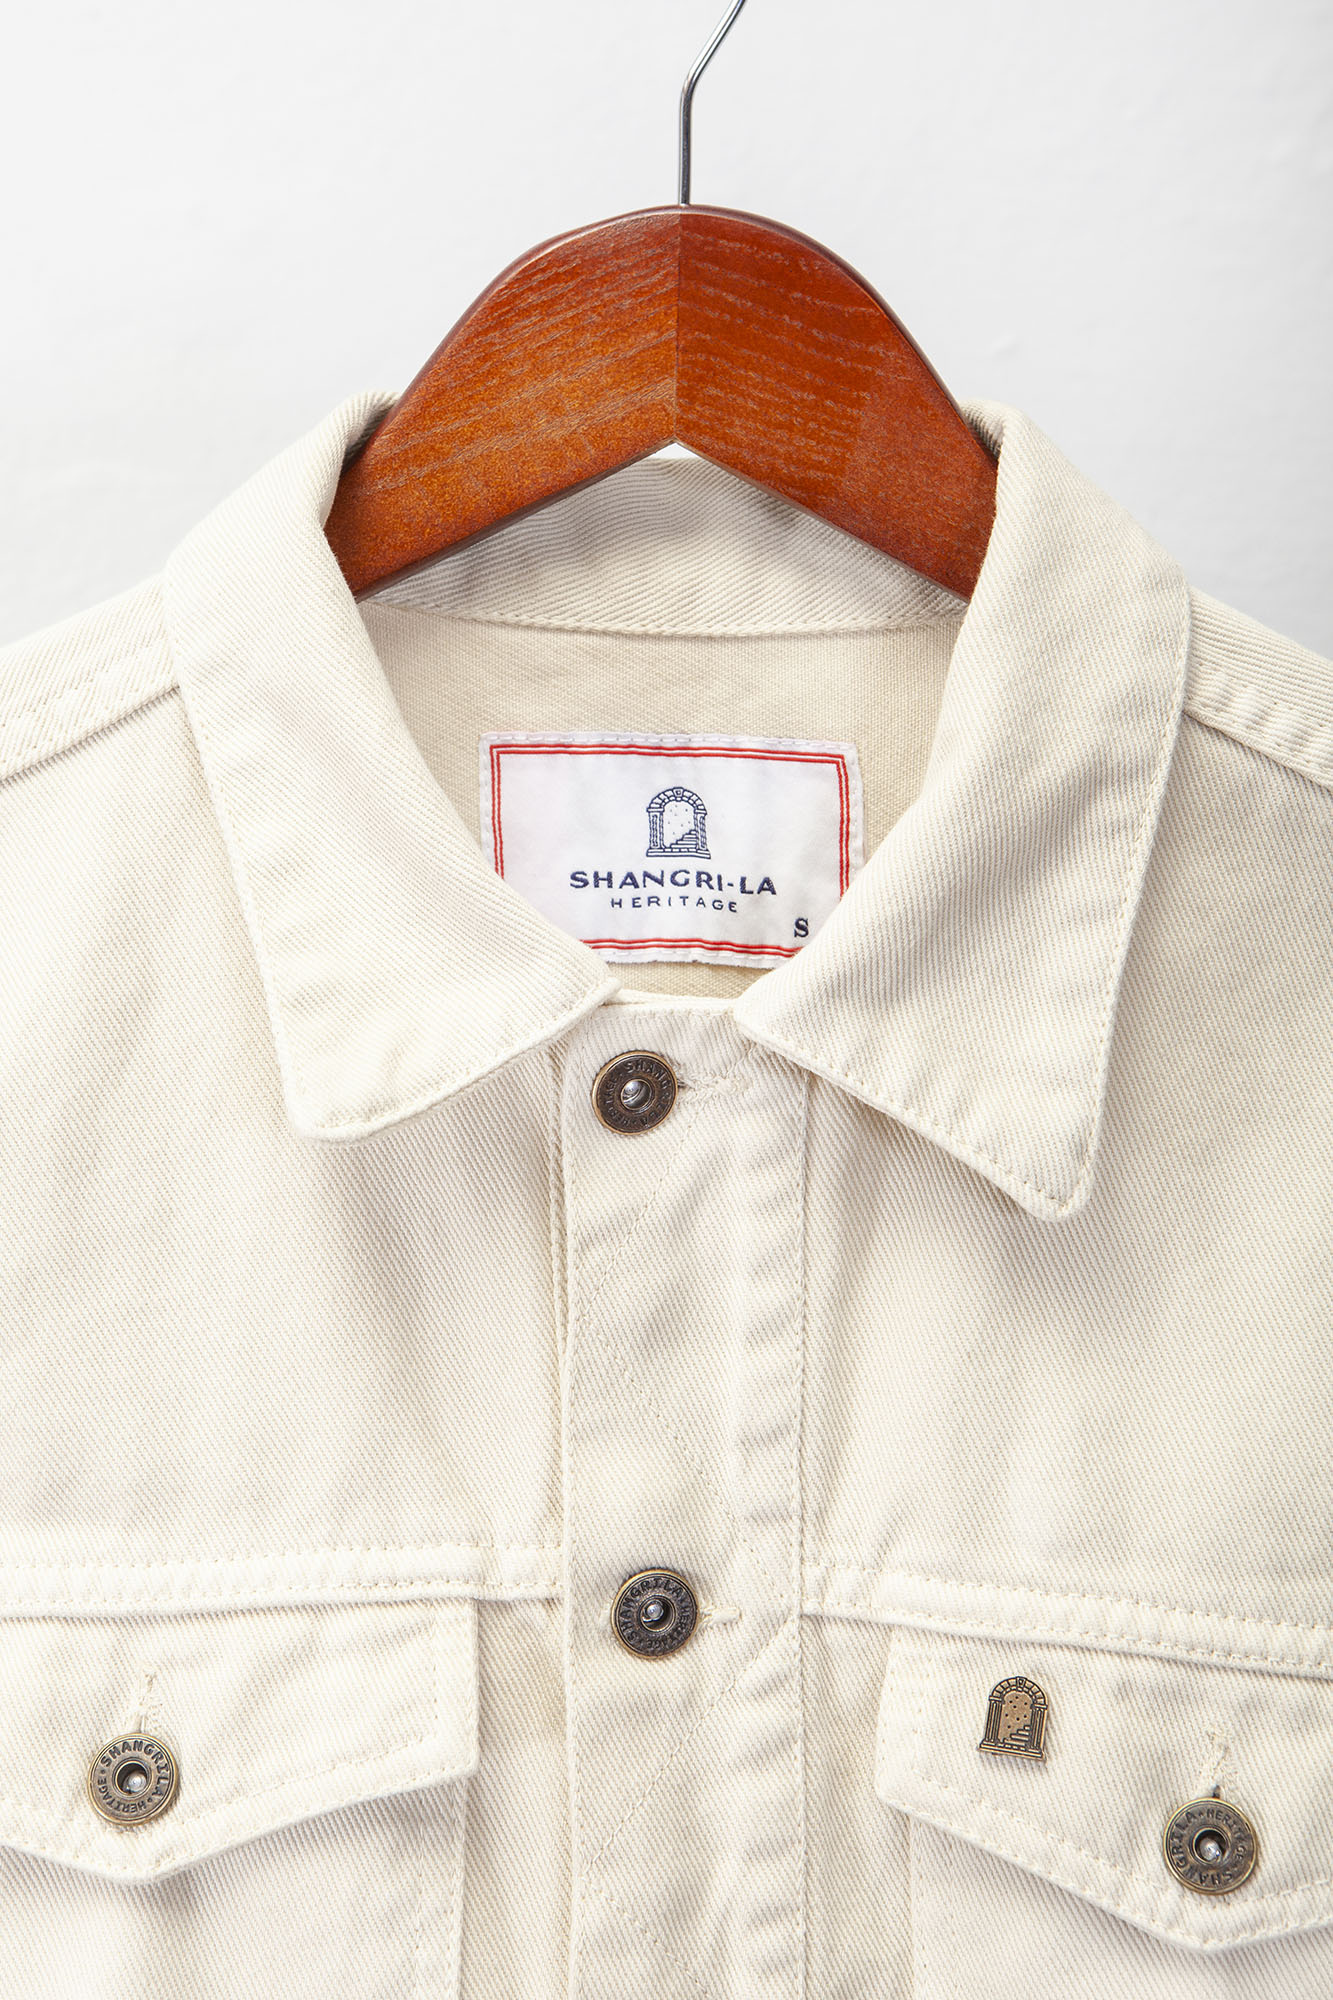 shangri-la-heritage-single-rider-ivory-canvas-jacket-still-life-front-top